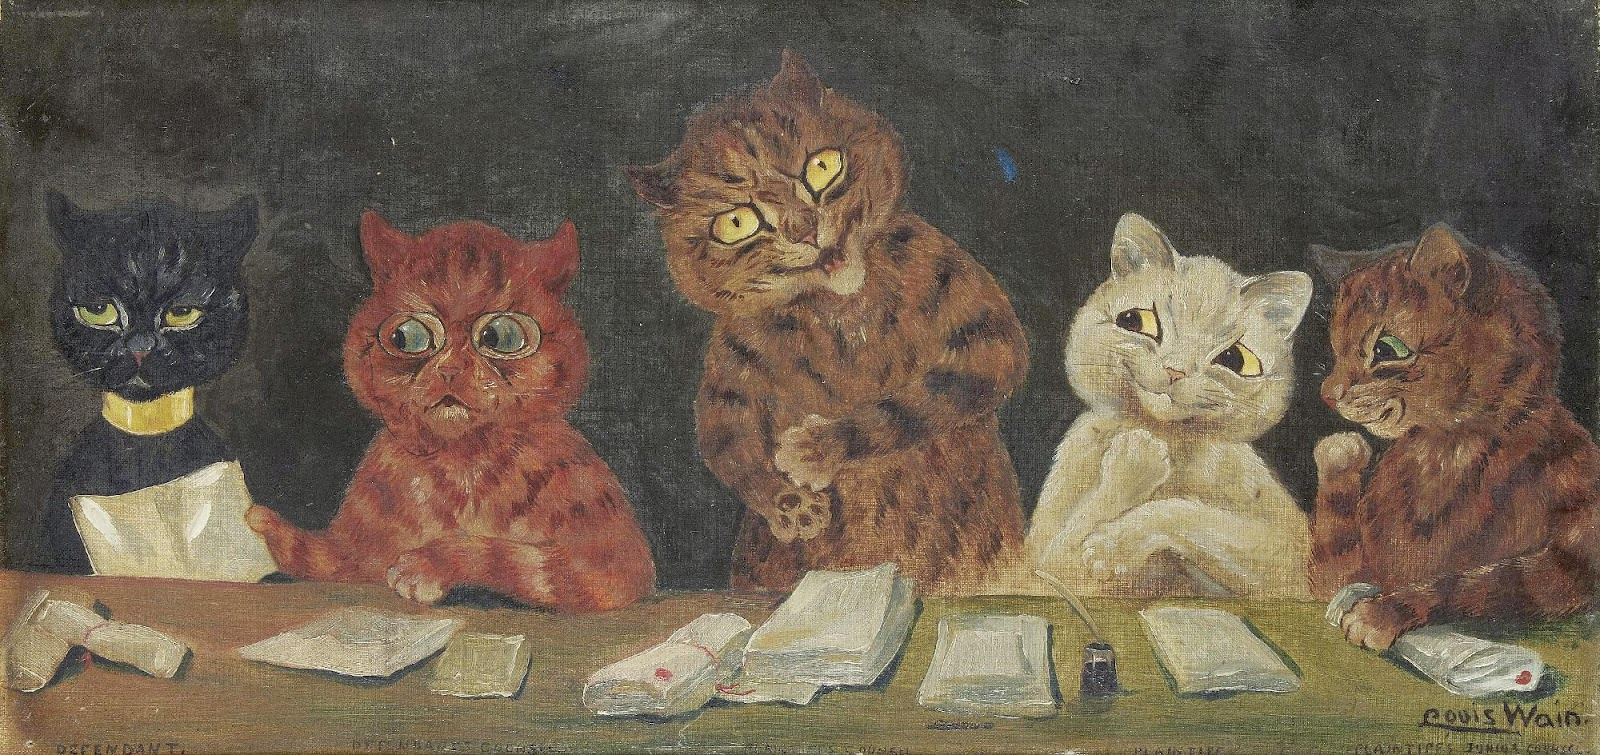 Louis Wain. Trial